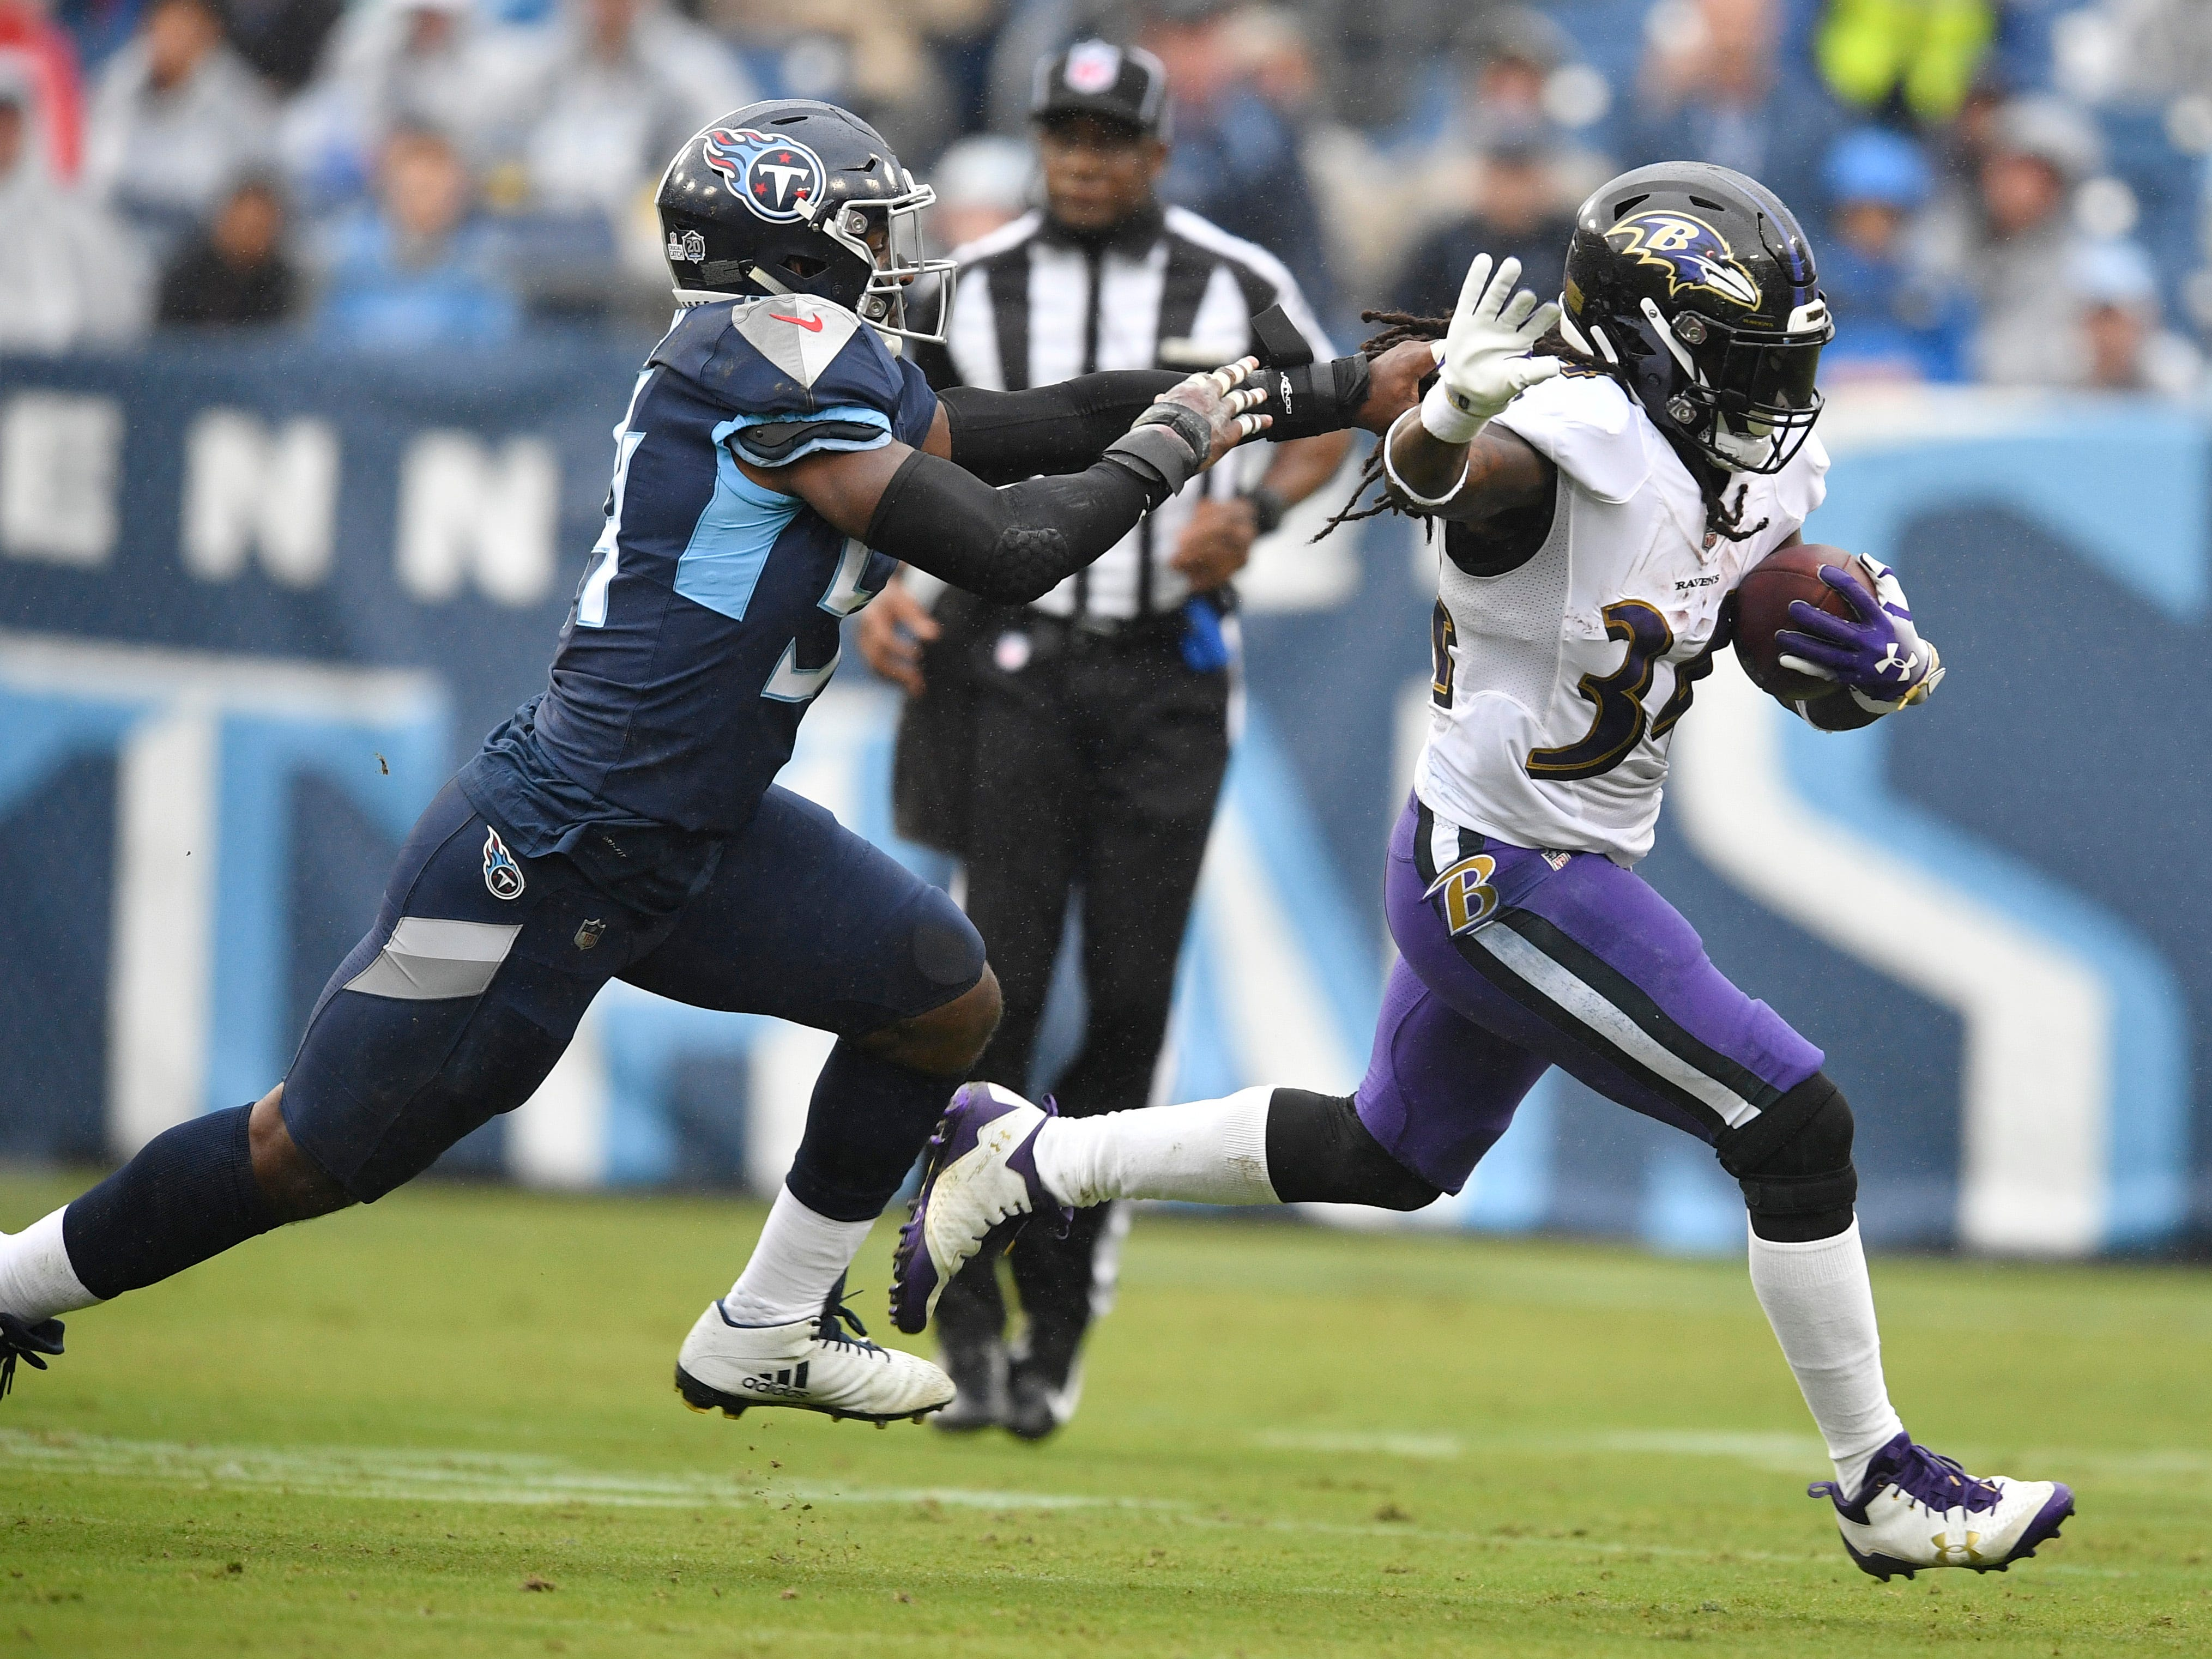 Ravens running back Alex Collins (34) gains yards defended by Titans linebacker Rashaan Evans (54) in the first quarter at Nissan Stadium Sunday, Oct. 14, 2018, in Nashville, Tenn.